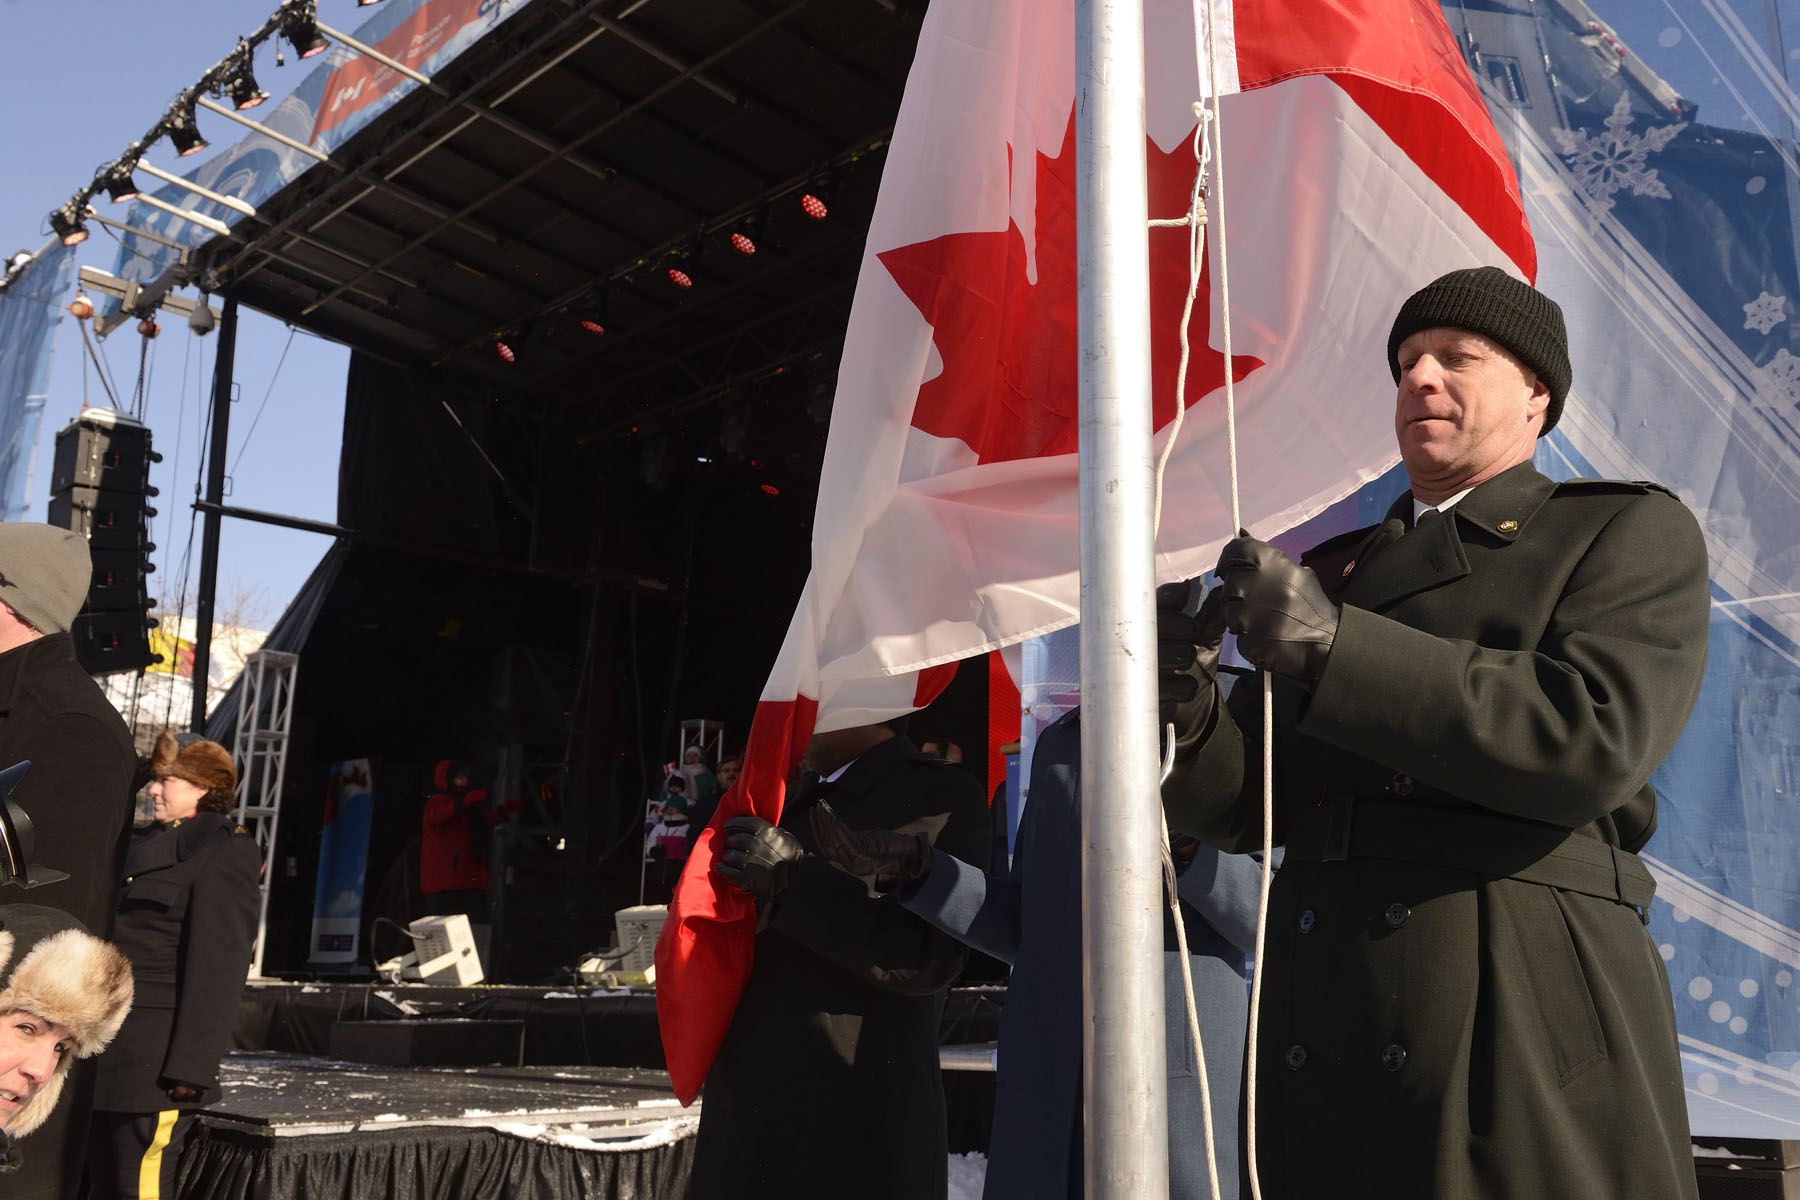 As the national anthem was song by the Choir, the National Flag of Canada was raised.